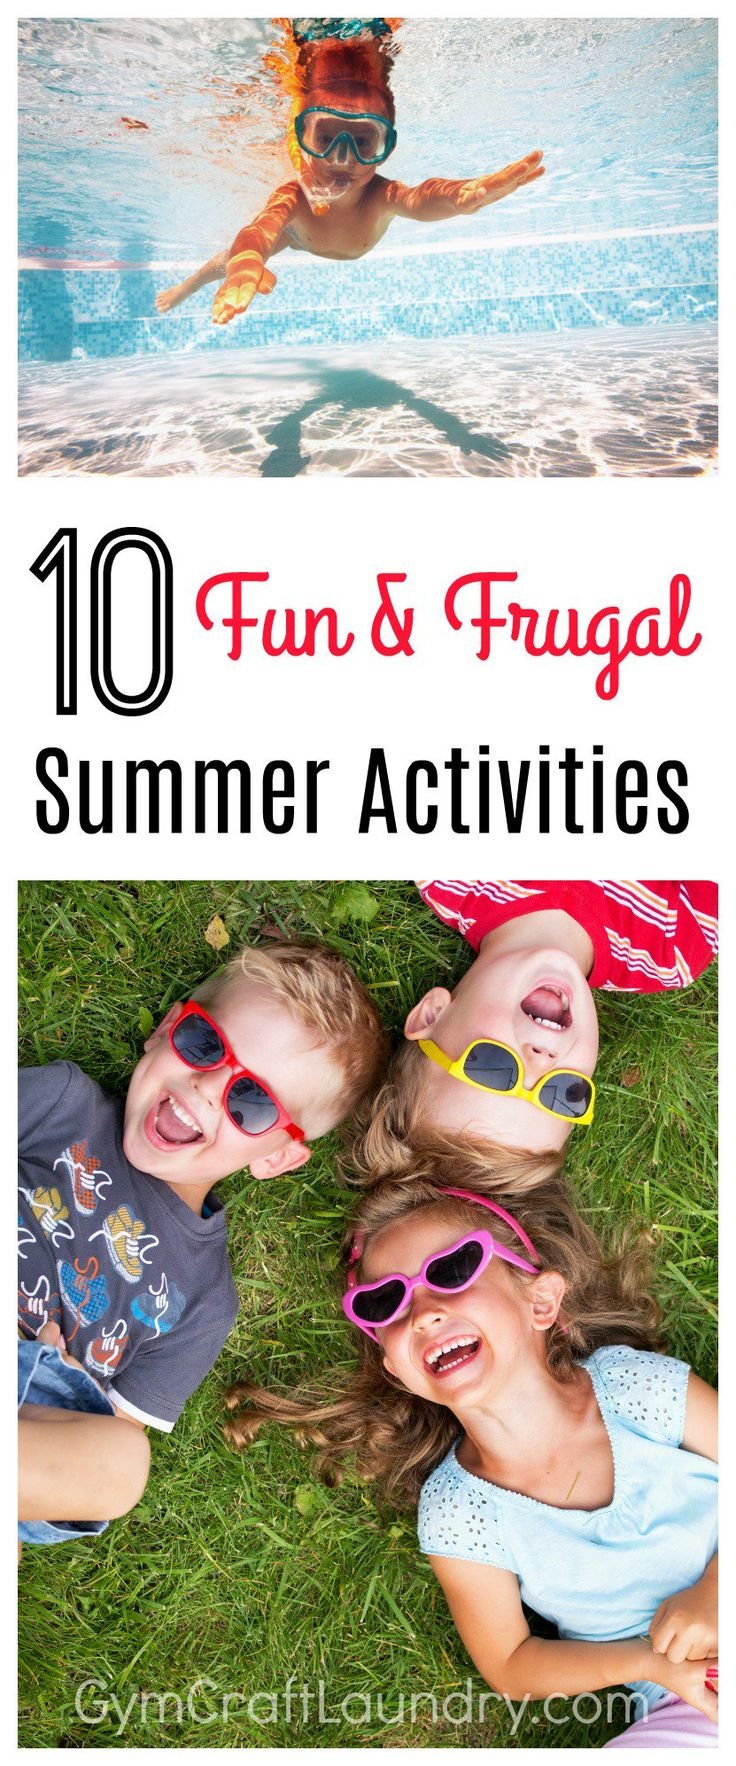 10 fun and frugal summer activities